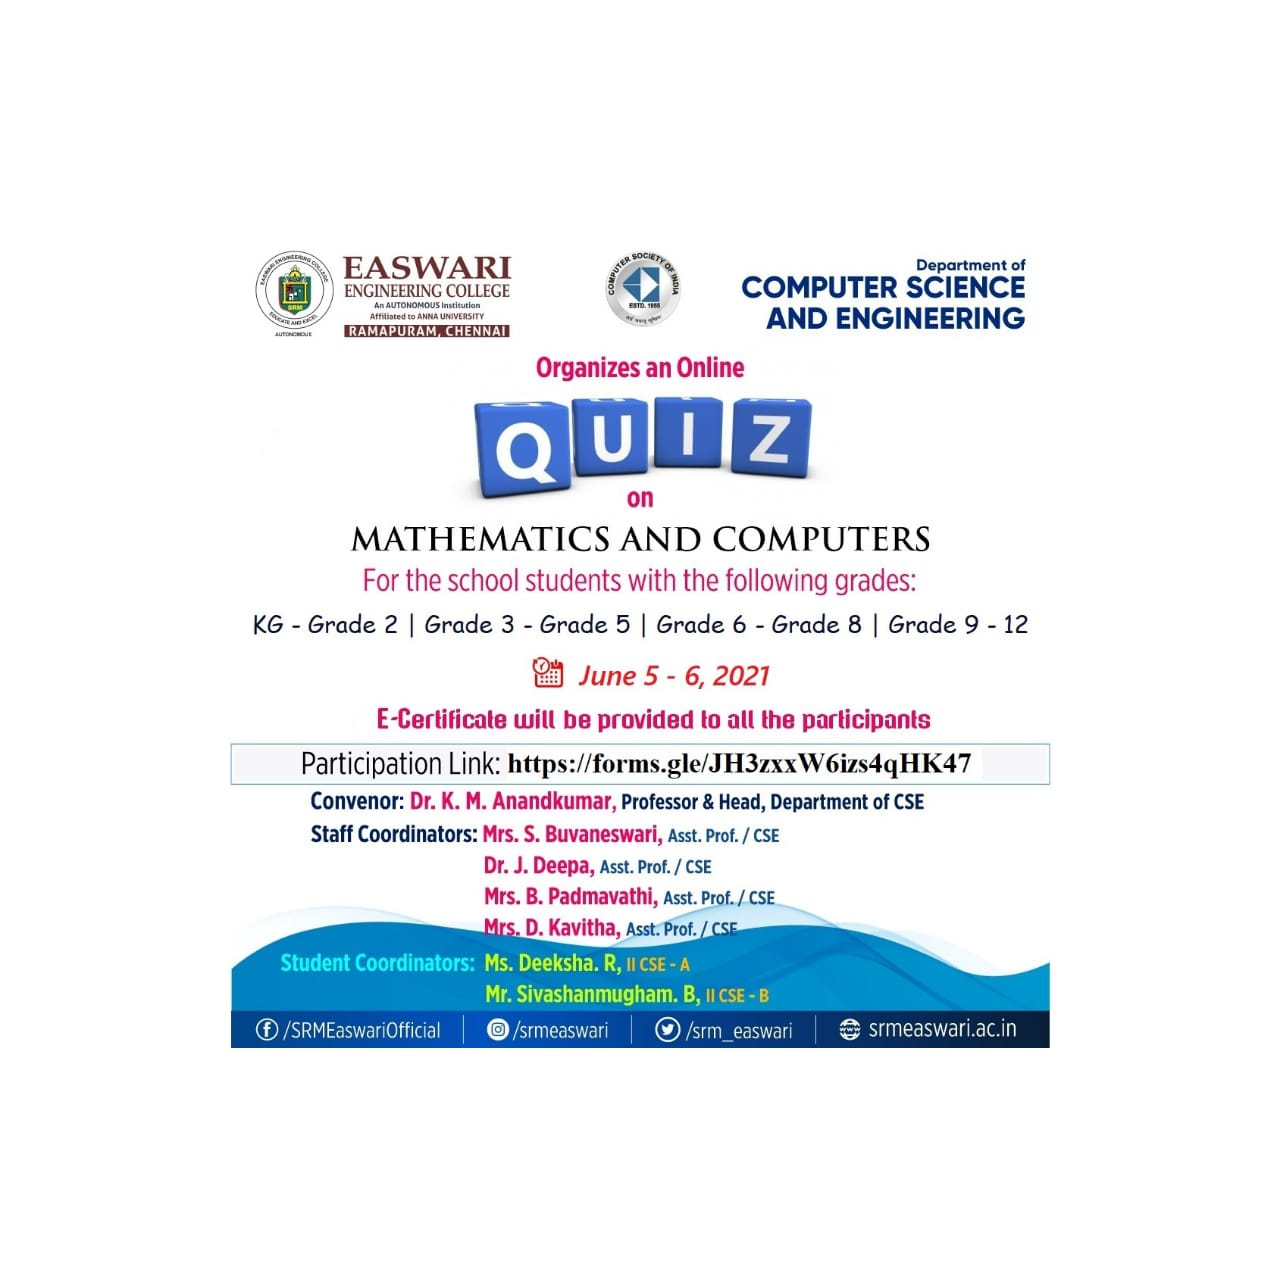 QUIZ ON MATHEMATICS AND COMPUTERS AND CURRENT AFFAIRS